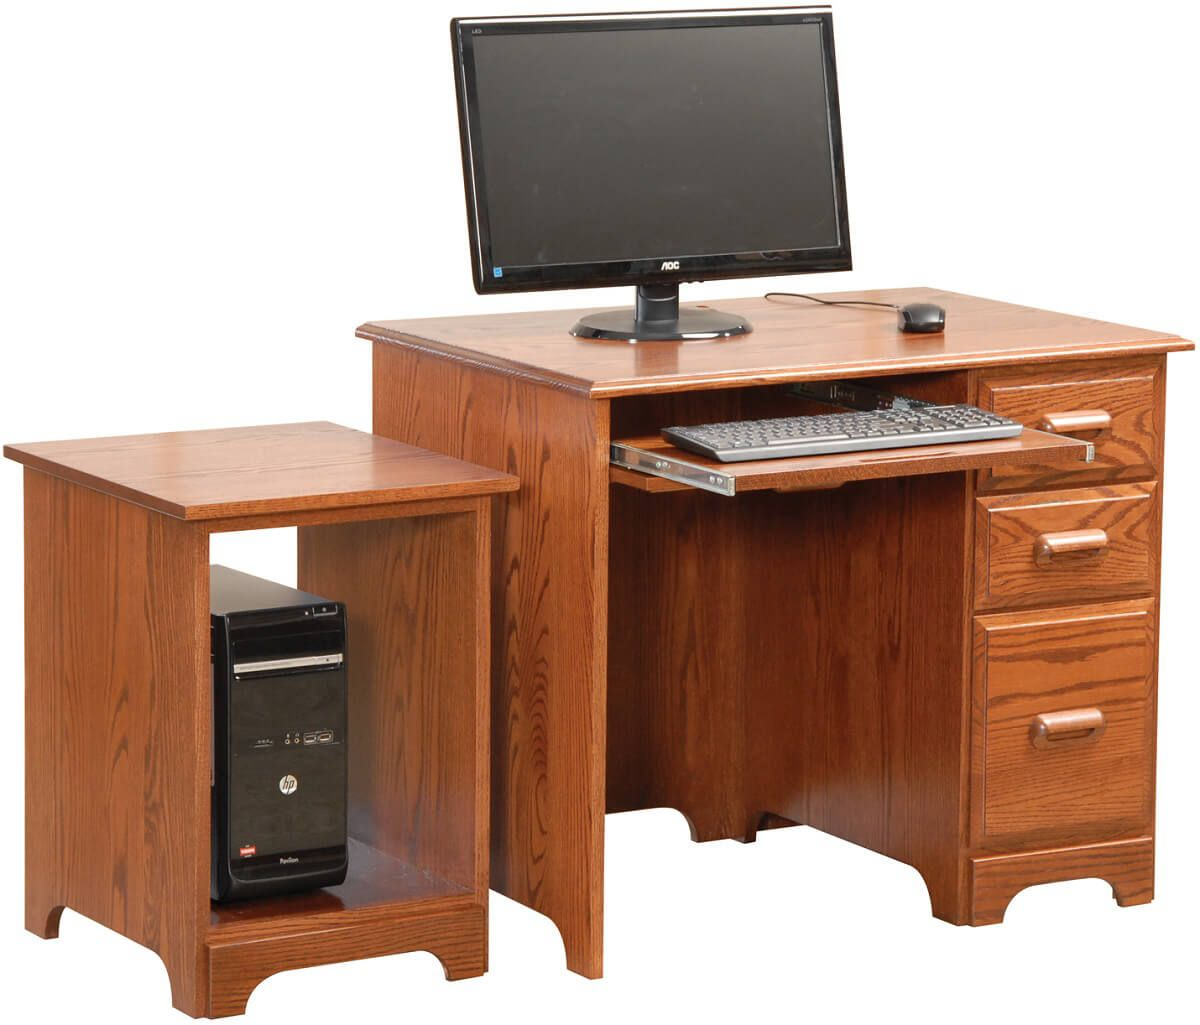 Pioneer's Desk with Pioneer CPU Stand